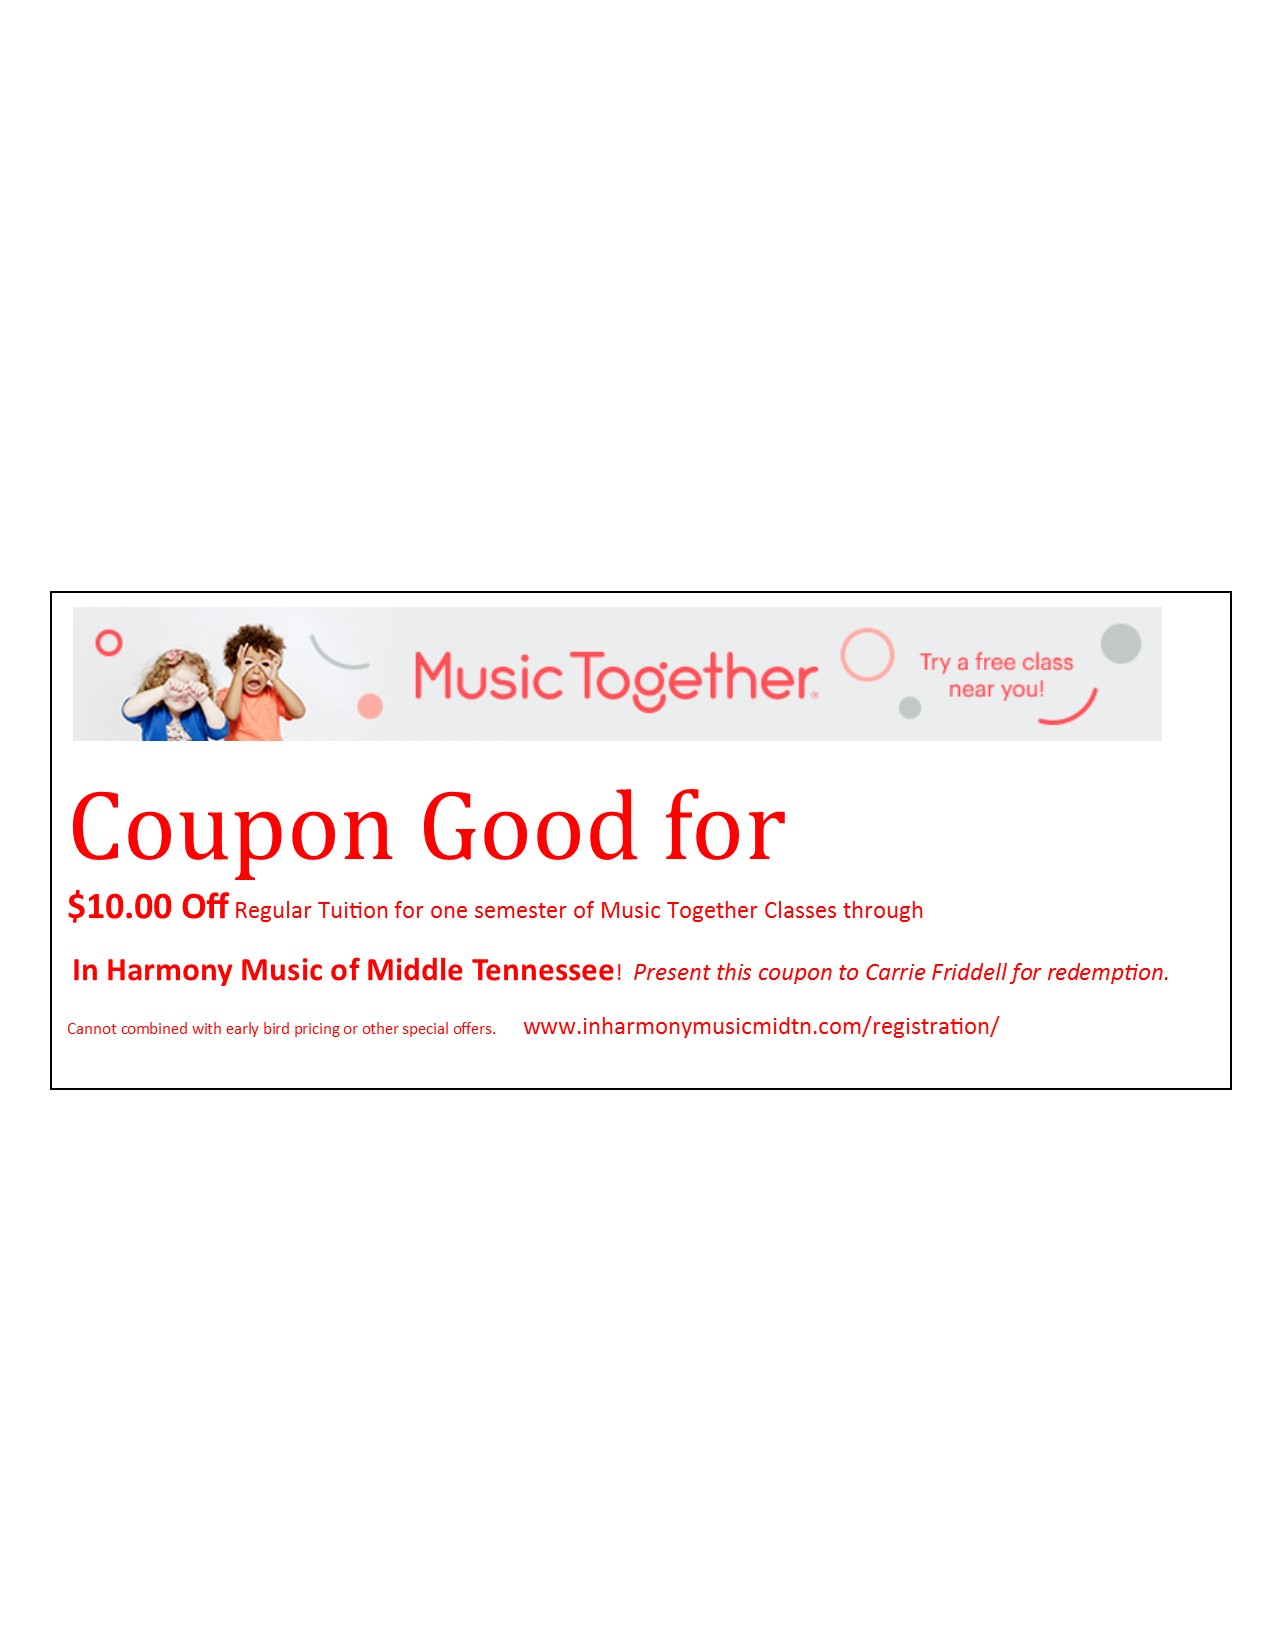 Music together coupon code